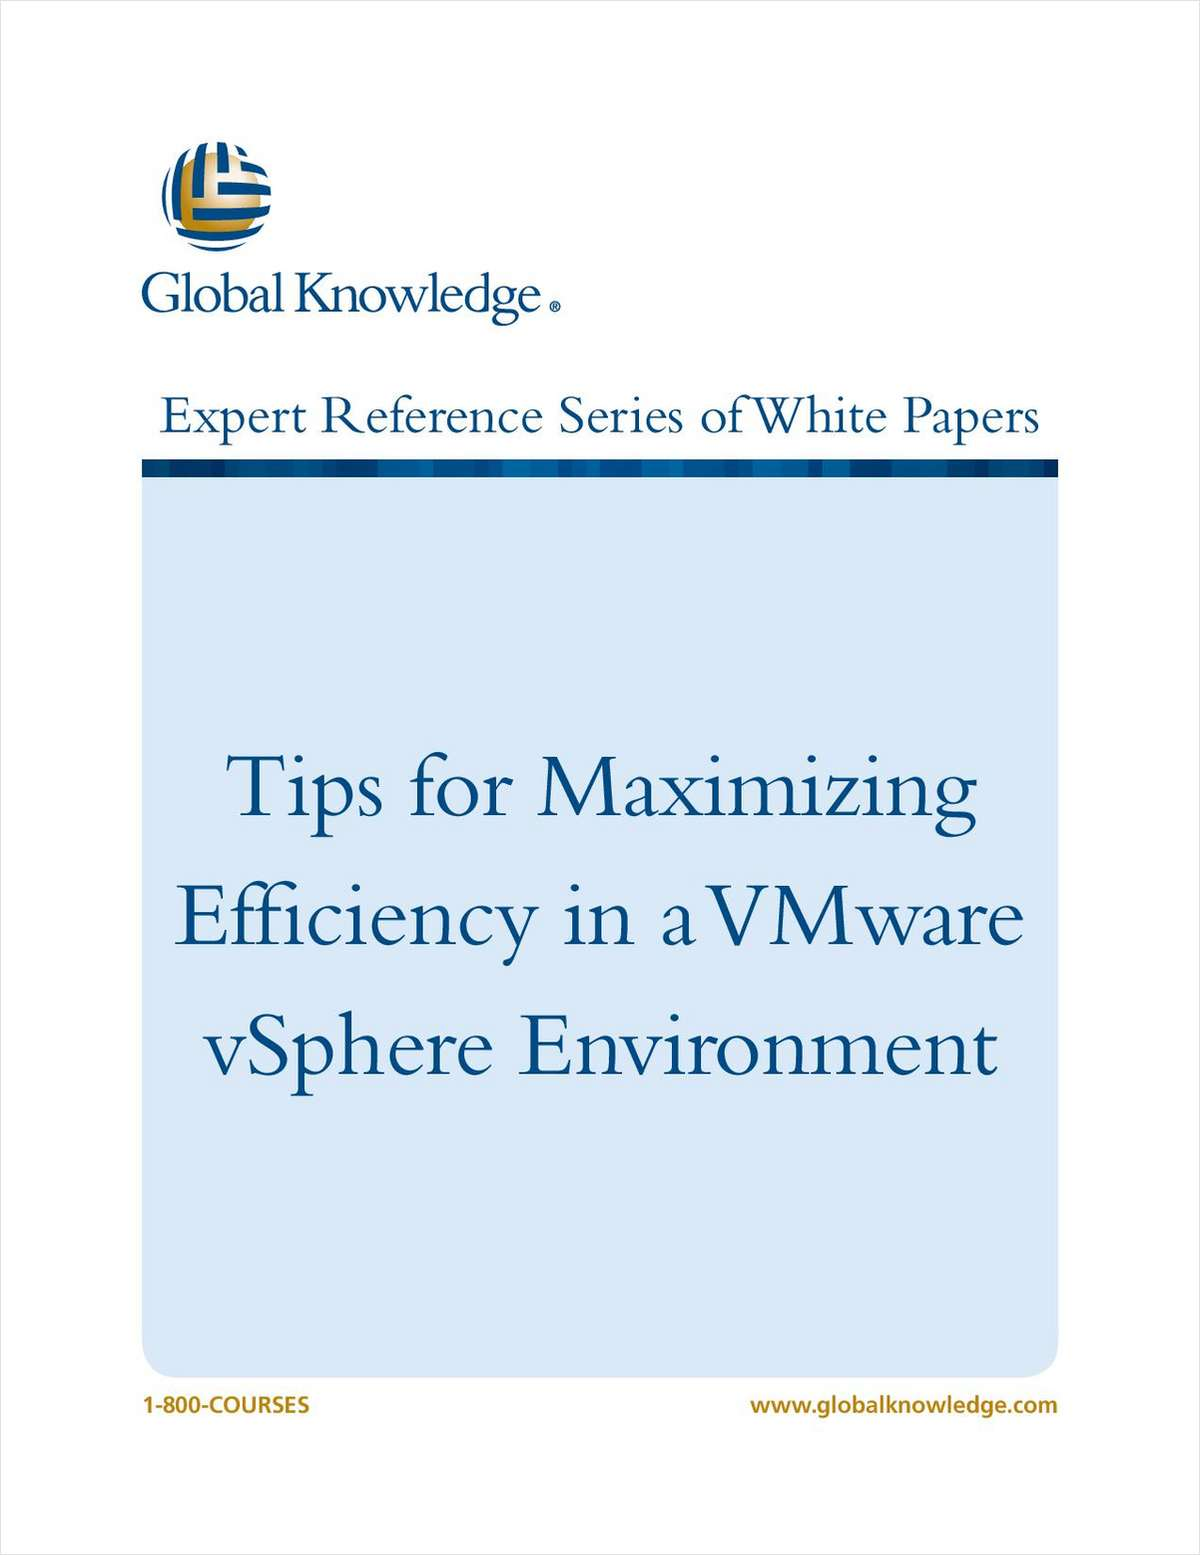 Tips for Maximizing Efficiency in a VMware vSphere Environment